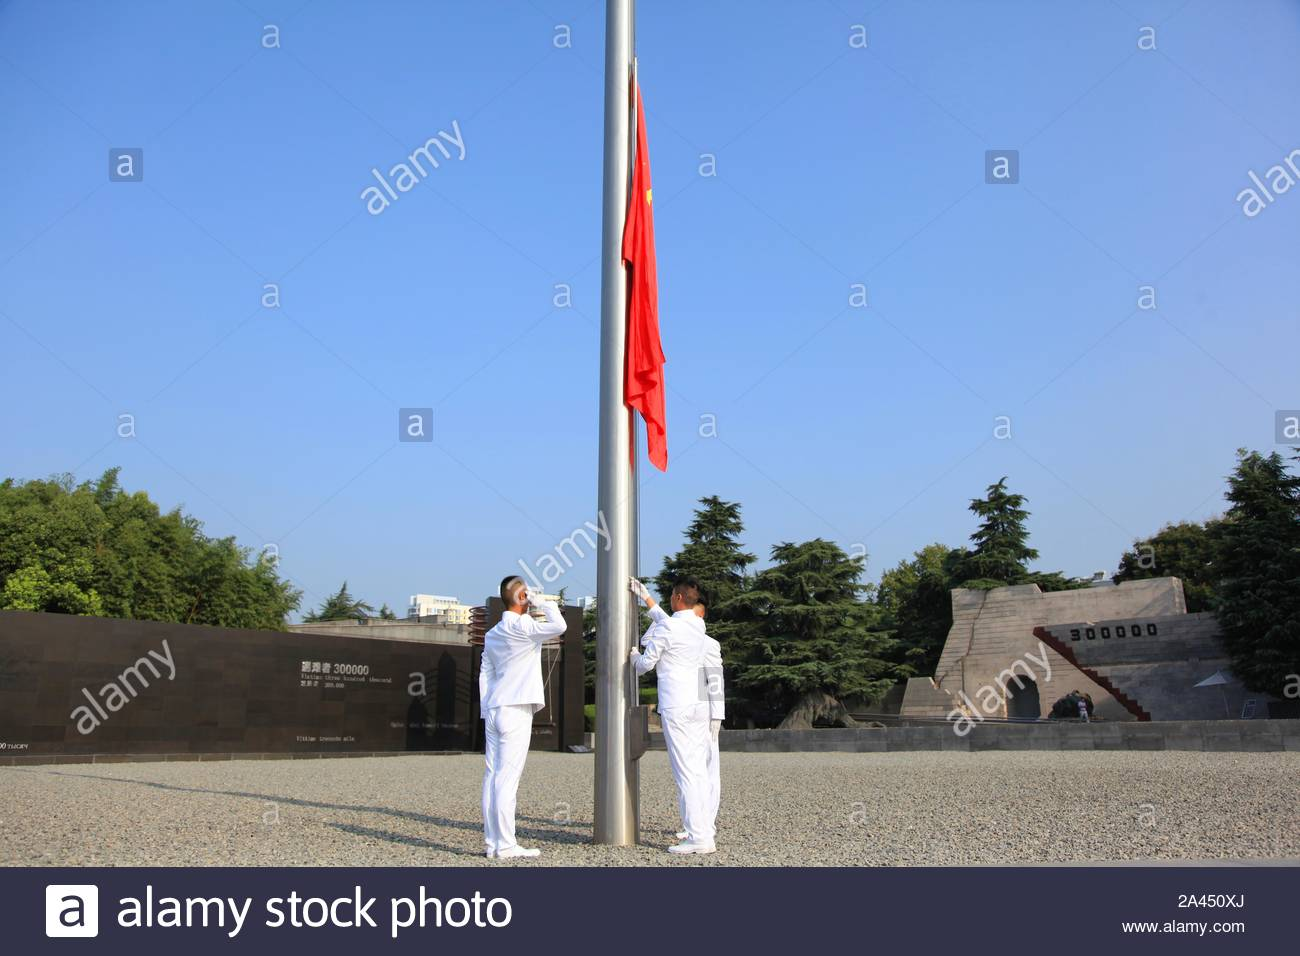 Representatives march during a flag-raising ceremony to commemorate the 74th anniversary of Japan's unconditional surrender in World War II at the Mem Stock Photo